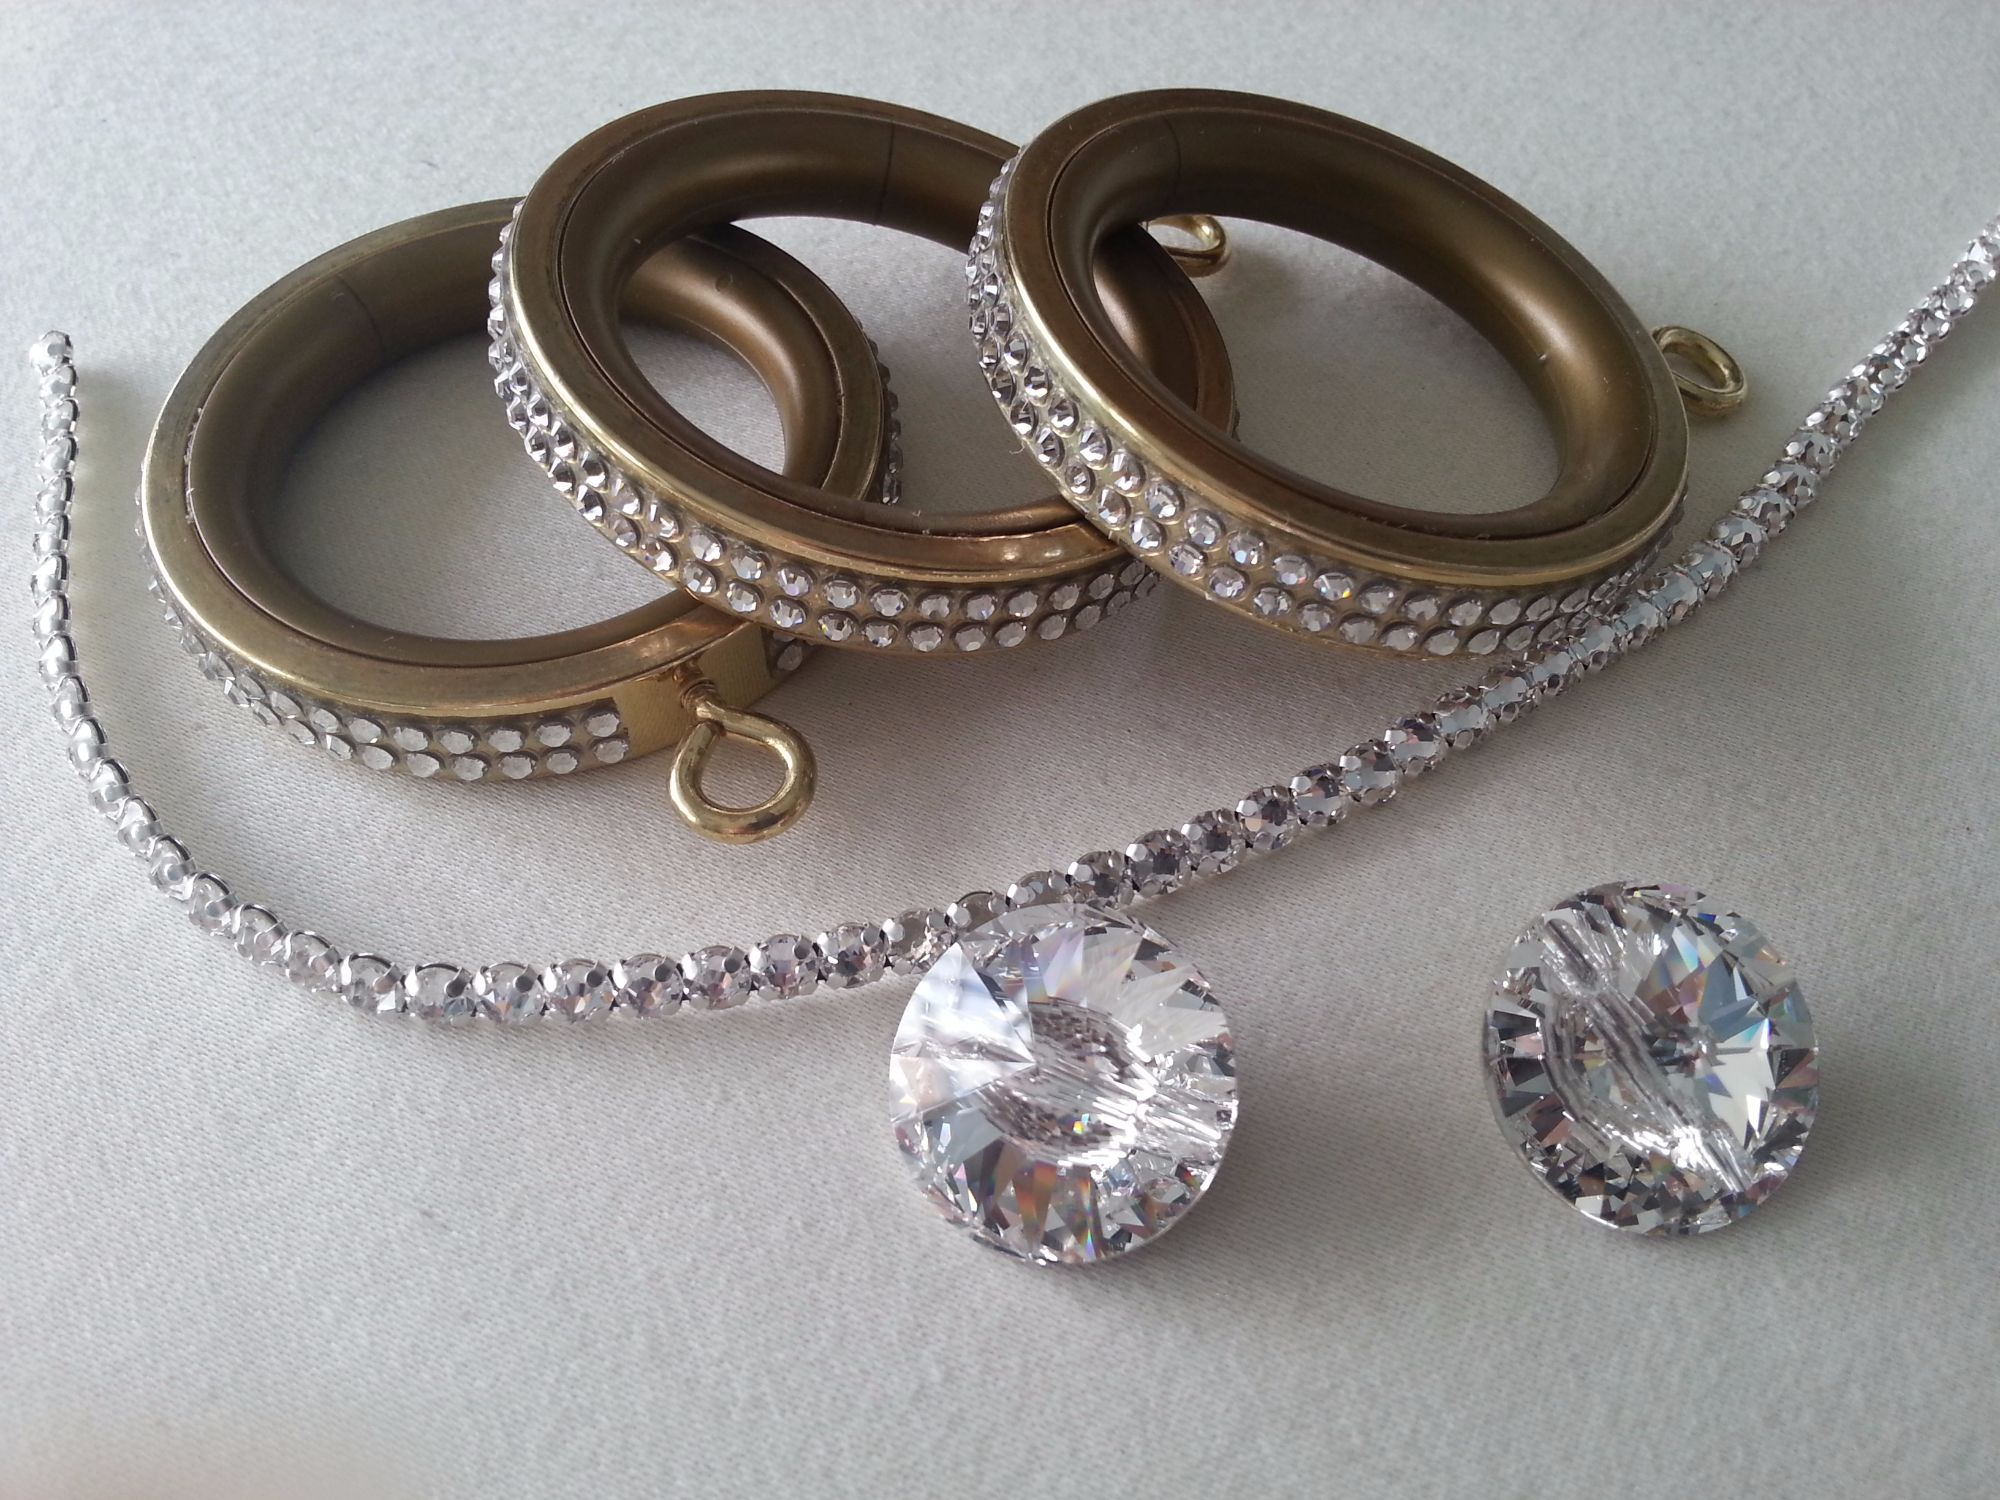 Crystal rings and trim